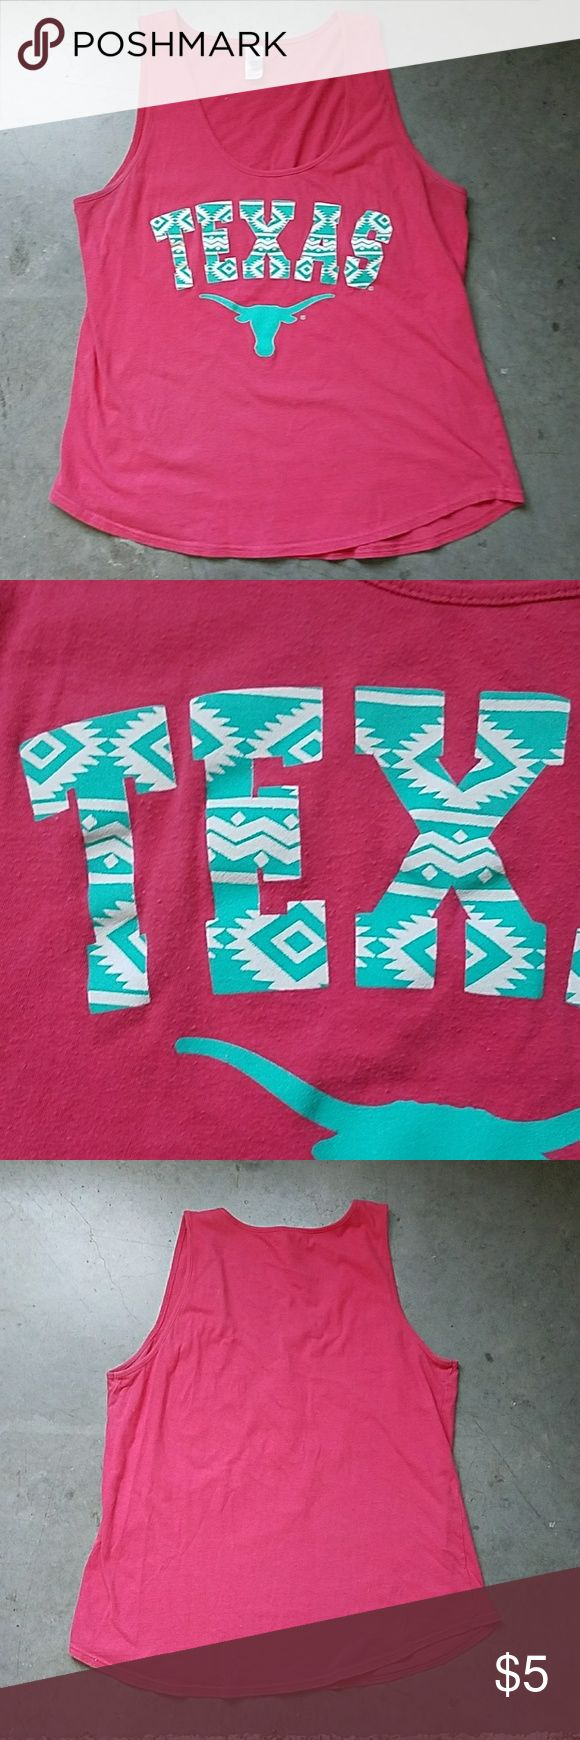 Texas Longhorn Pink Tank This super comfortable tank is 100% cotton with a flattering rounded hem. Support the Longhorns or rep Texas with fun Aztec print text and solid teal Longhorn. Willing to negotiate price. UT Austin Co-Op Tops Tank Tops